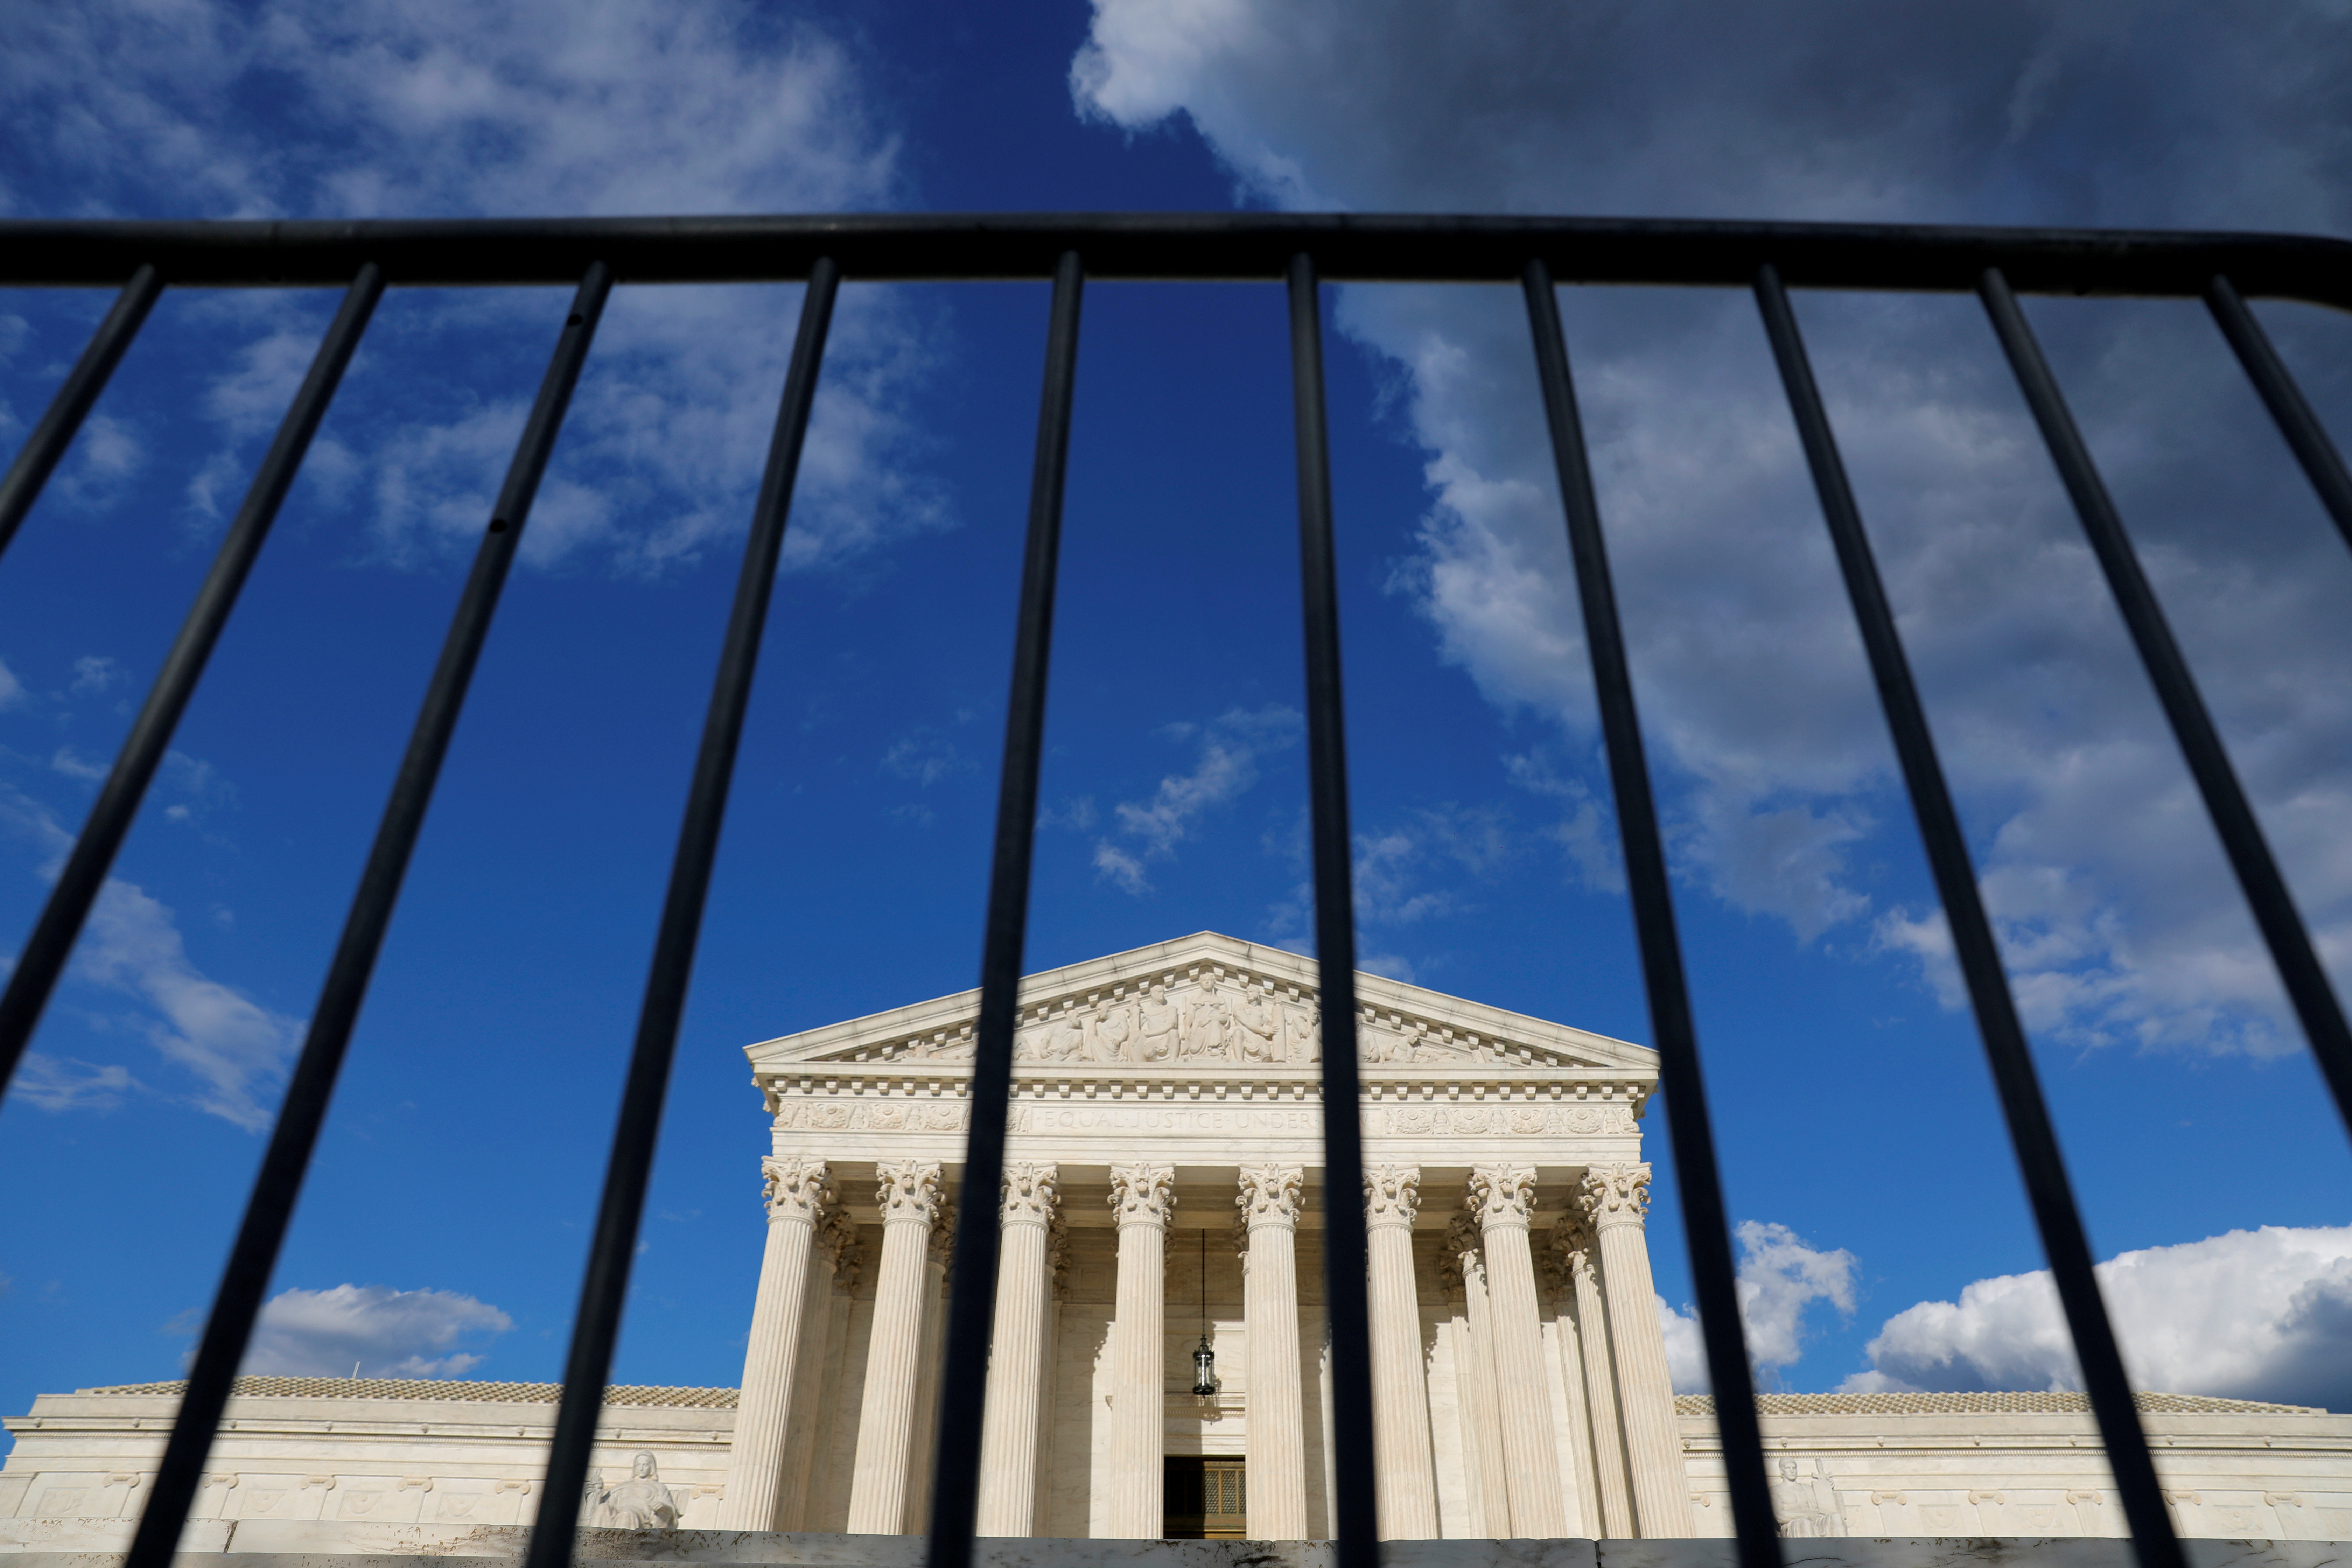 Fencing is seen in front of the United States Supreme Court Building in Washington, D.C., U.S., May 13, 2021. REUTERS/Andrew Kelly